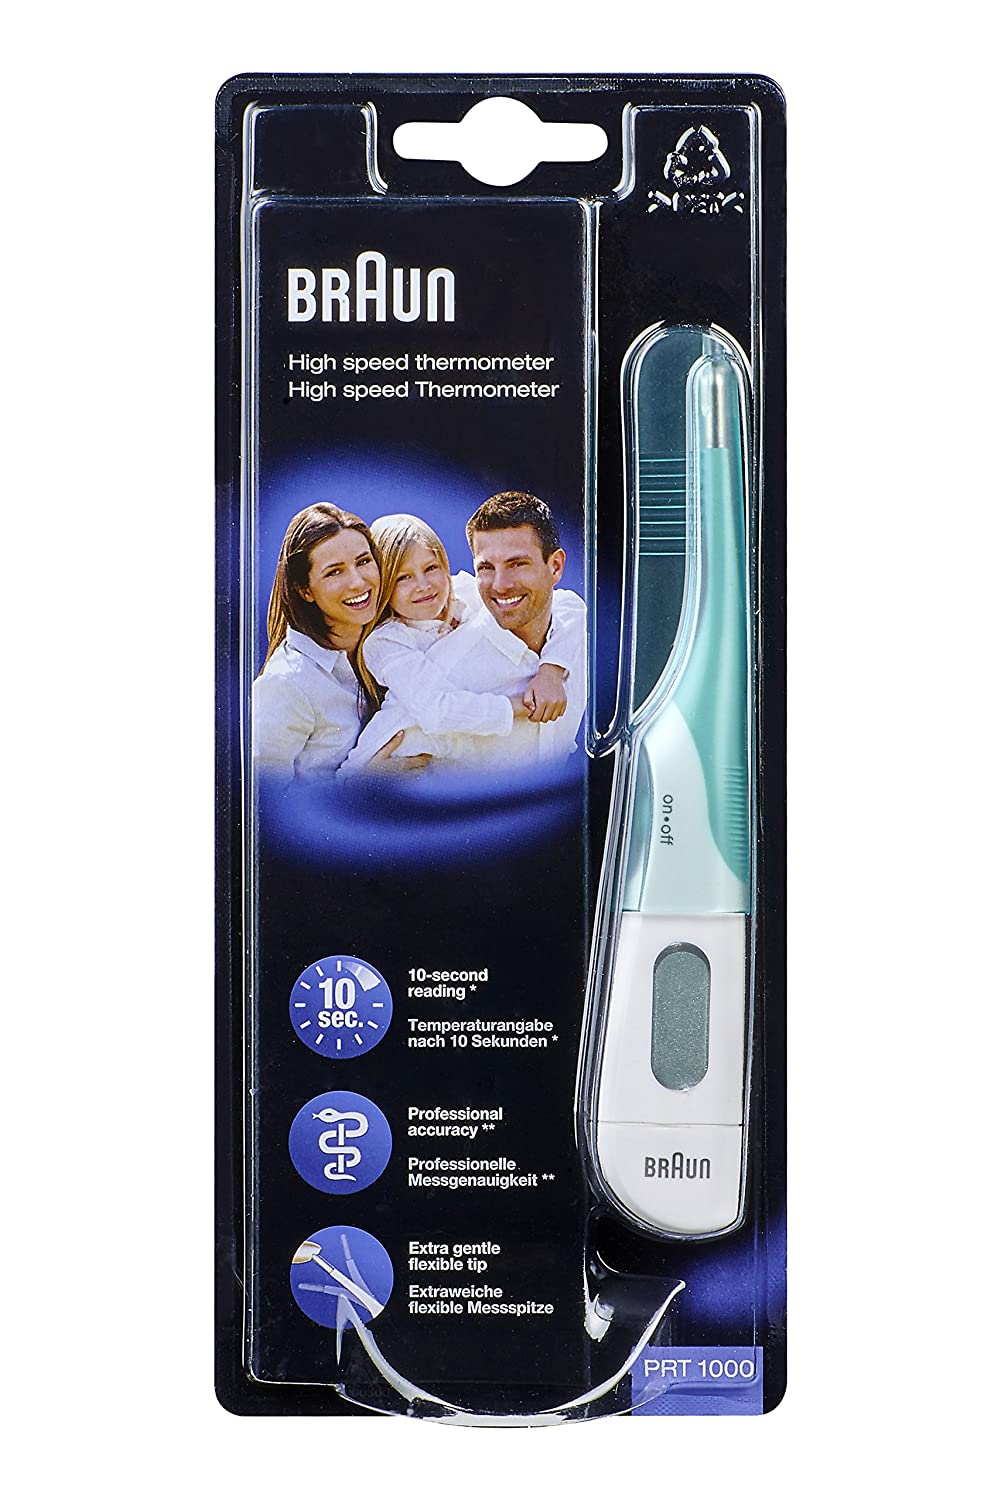 Braun PRT1000 High Speed 3-in-1 Thermometer 66024800 Thermometers digital thermometers